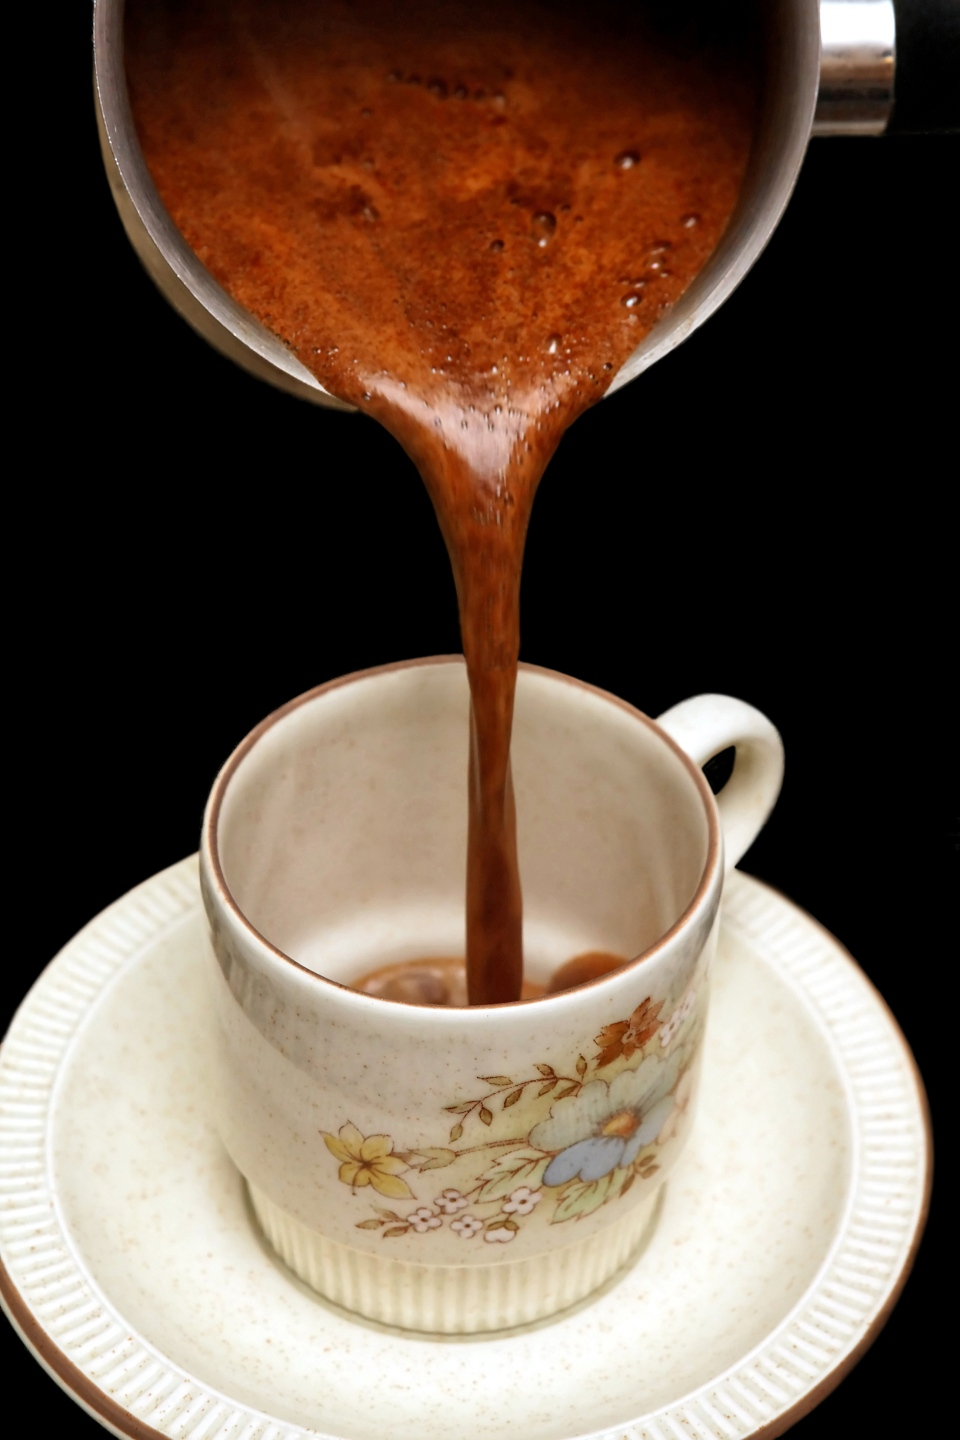 A cup of coffee is shown. (Dimitrios Rizopoulos / shutterstock.com)